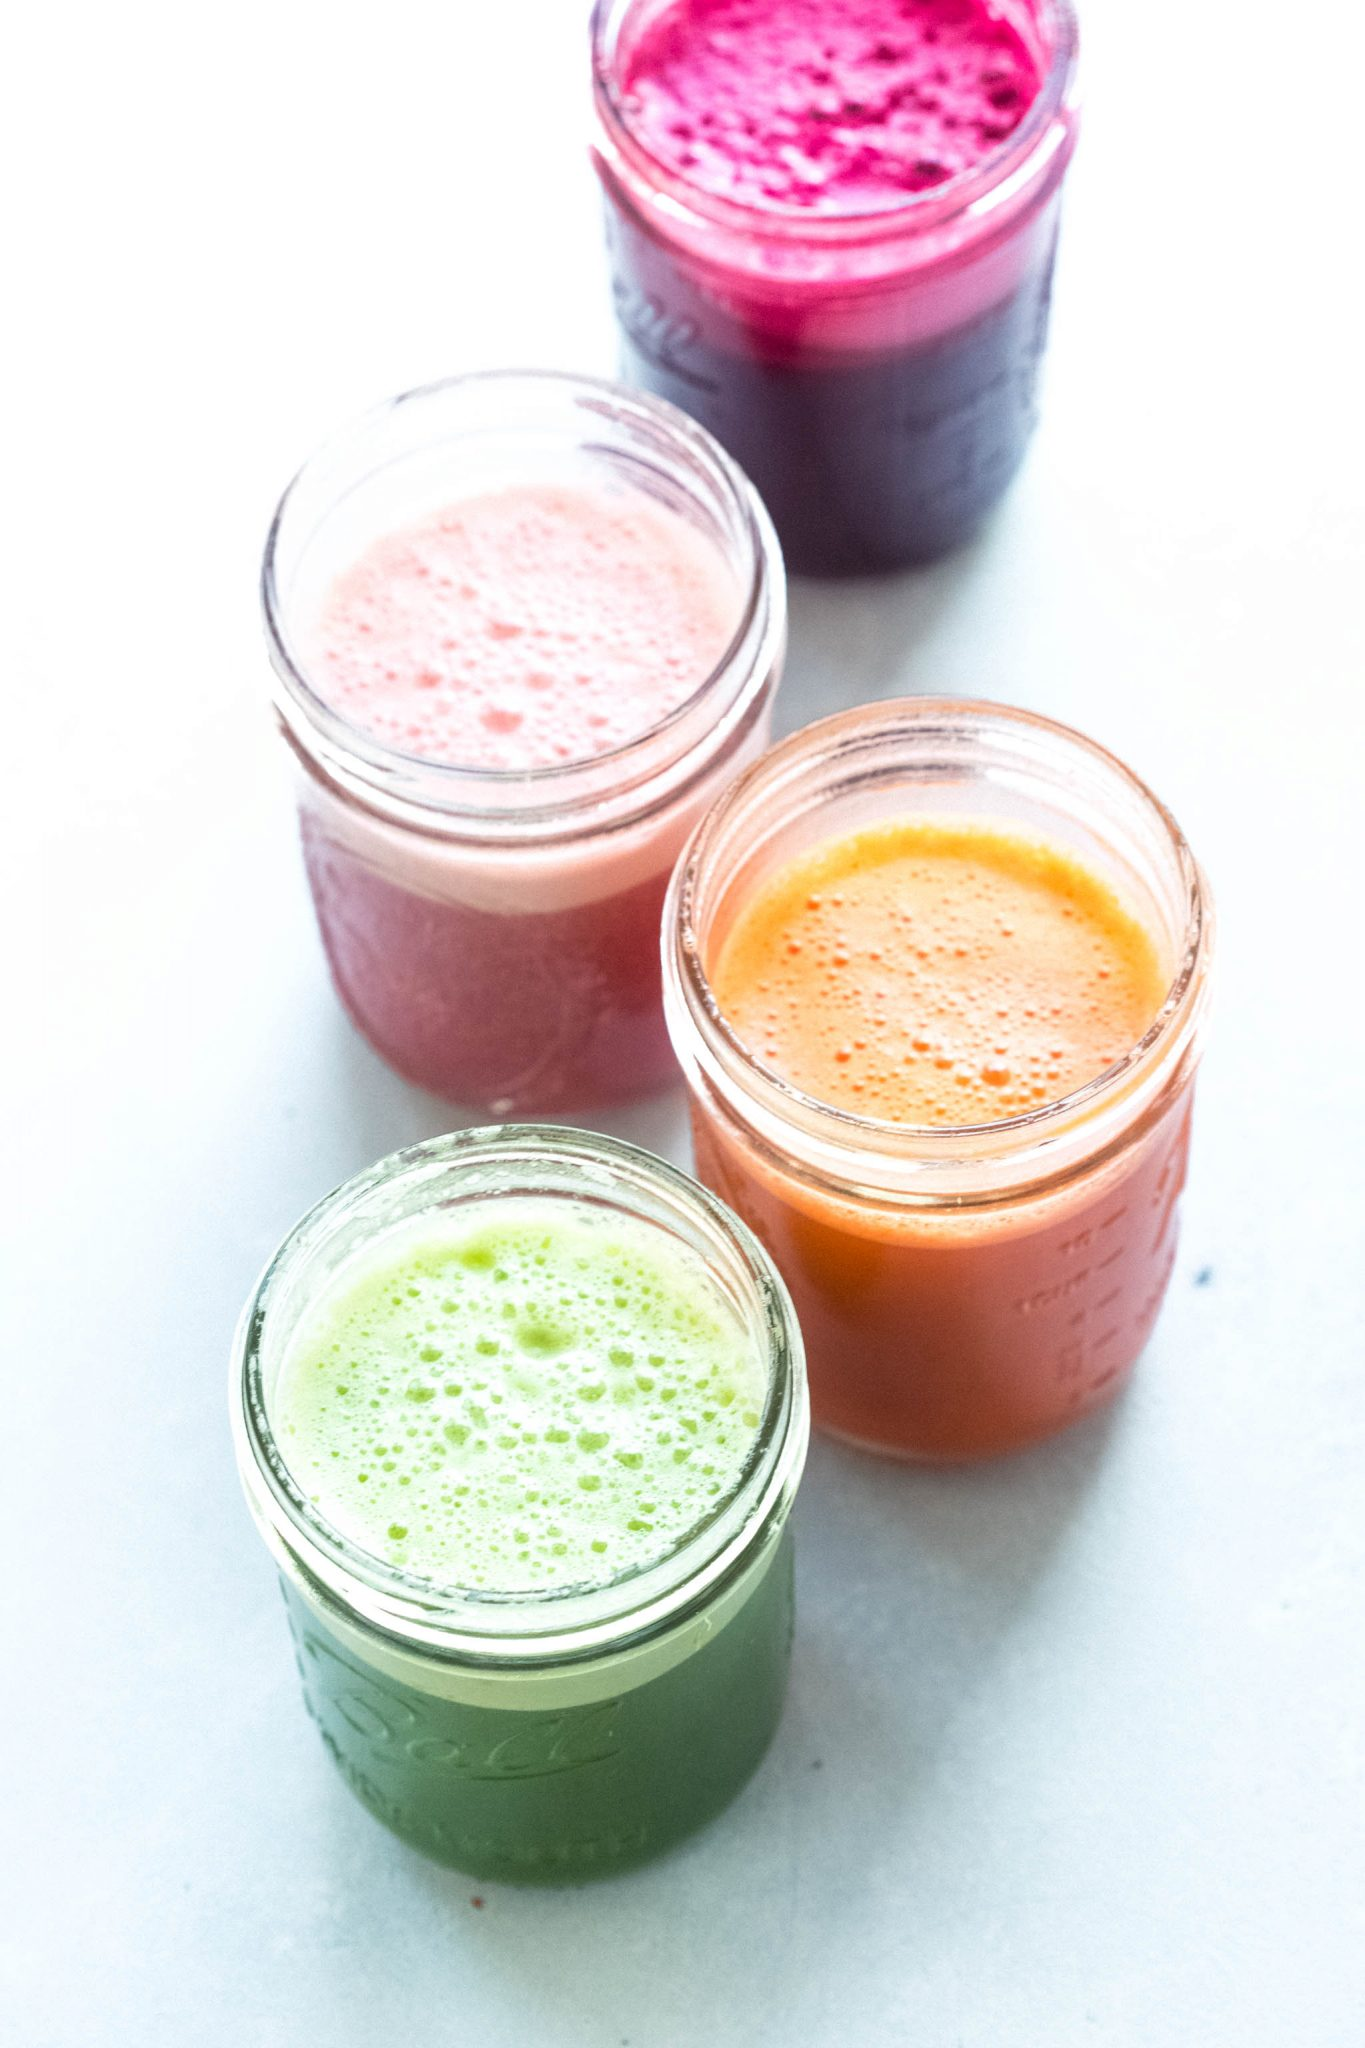 "Four different colorful juices in a row in mason jars. ""Width ="" 1365 ""height ="" 2048 ""srcset ="" https://www.platingsandpairings.com/wp-content/uploads/2019/03/juice-cleanse-recipes -10.jpg 1365w, https: // www .platingsandpairings.com / wp-content / uploads / 2019/03 / juice-cleanse-recipes-10-100x150.jpg 100w, https://www.platingsandpairings.com/wp -content / uploads / 2019/03 / juice- cleanse-recipes-10-333x500.jpg 333w, https://www.platingsandpairings.com/wp-content/uploads/2019/03/juice-cleanse-recipes-10- 768x1152.jpg 768w, https: // www. platingsandpairings.com/wp-content/uploads/2019/03/juice-cleanse-recipes-10-683x1024.jpg 683w, https://www.platingsandpairings.com/wp- content / uploads / 2019/03 / juice-cleanse -recepts-10-1460x2190.jpg 1460w ""sizes ="" (max-width: 1365px) 100vw, 1365px"